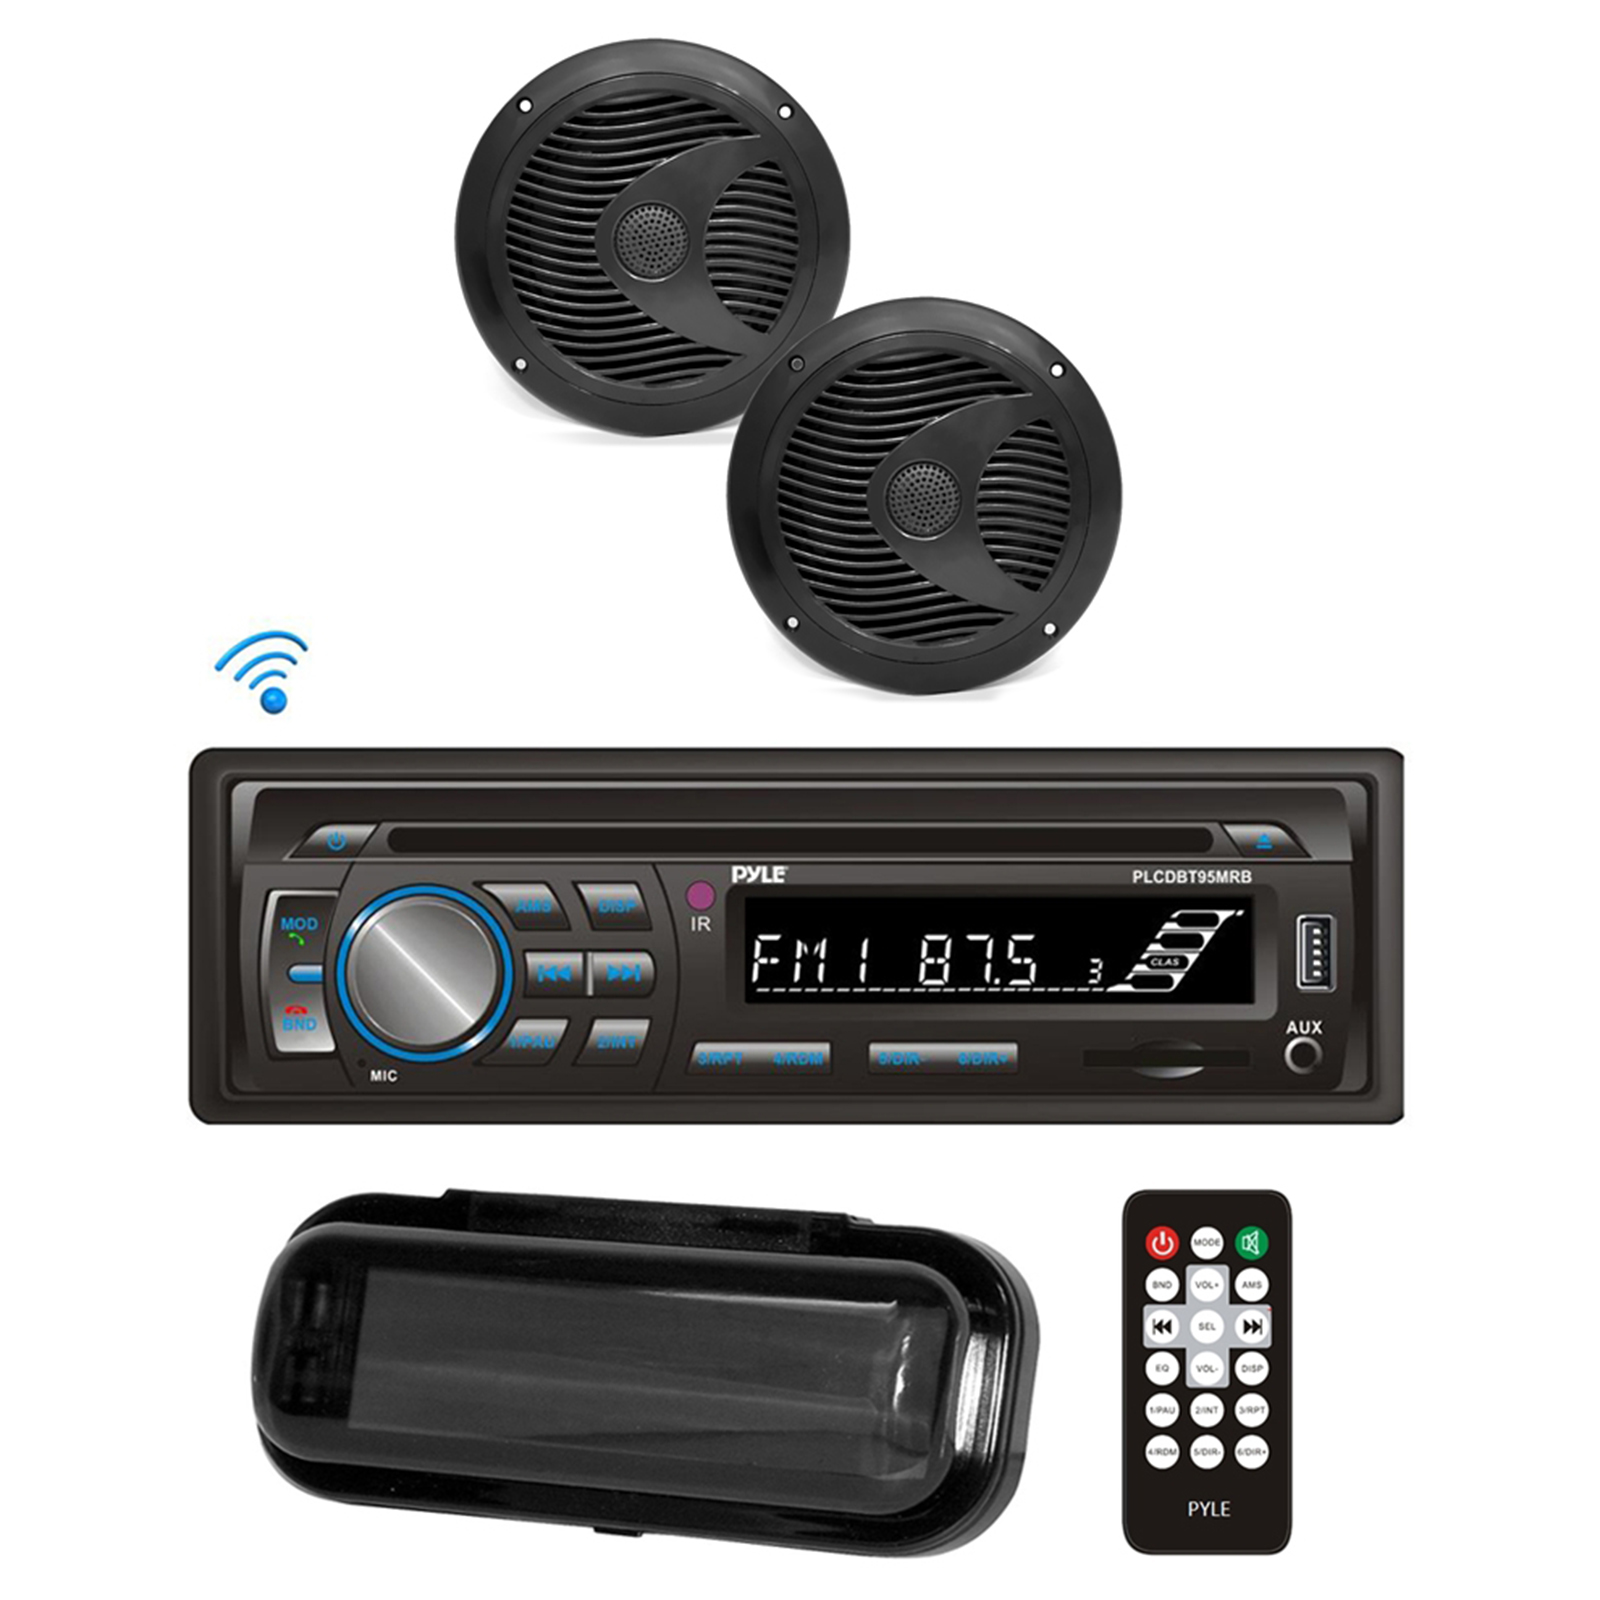 BT Marine Stereo Radio Receiver & Waterproof Speaker Kit, Hands-Free Talking, CD Player, MP3 USB SD Readers, AM FM... by Pyle